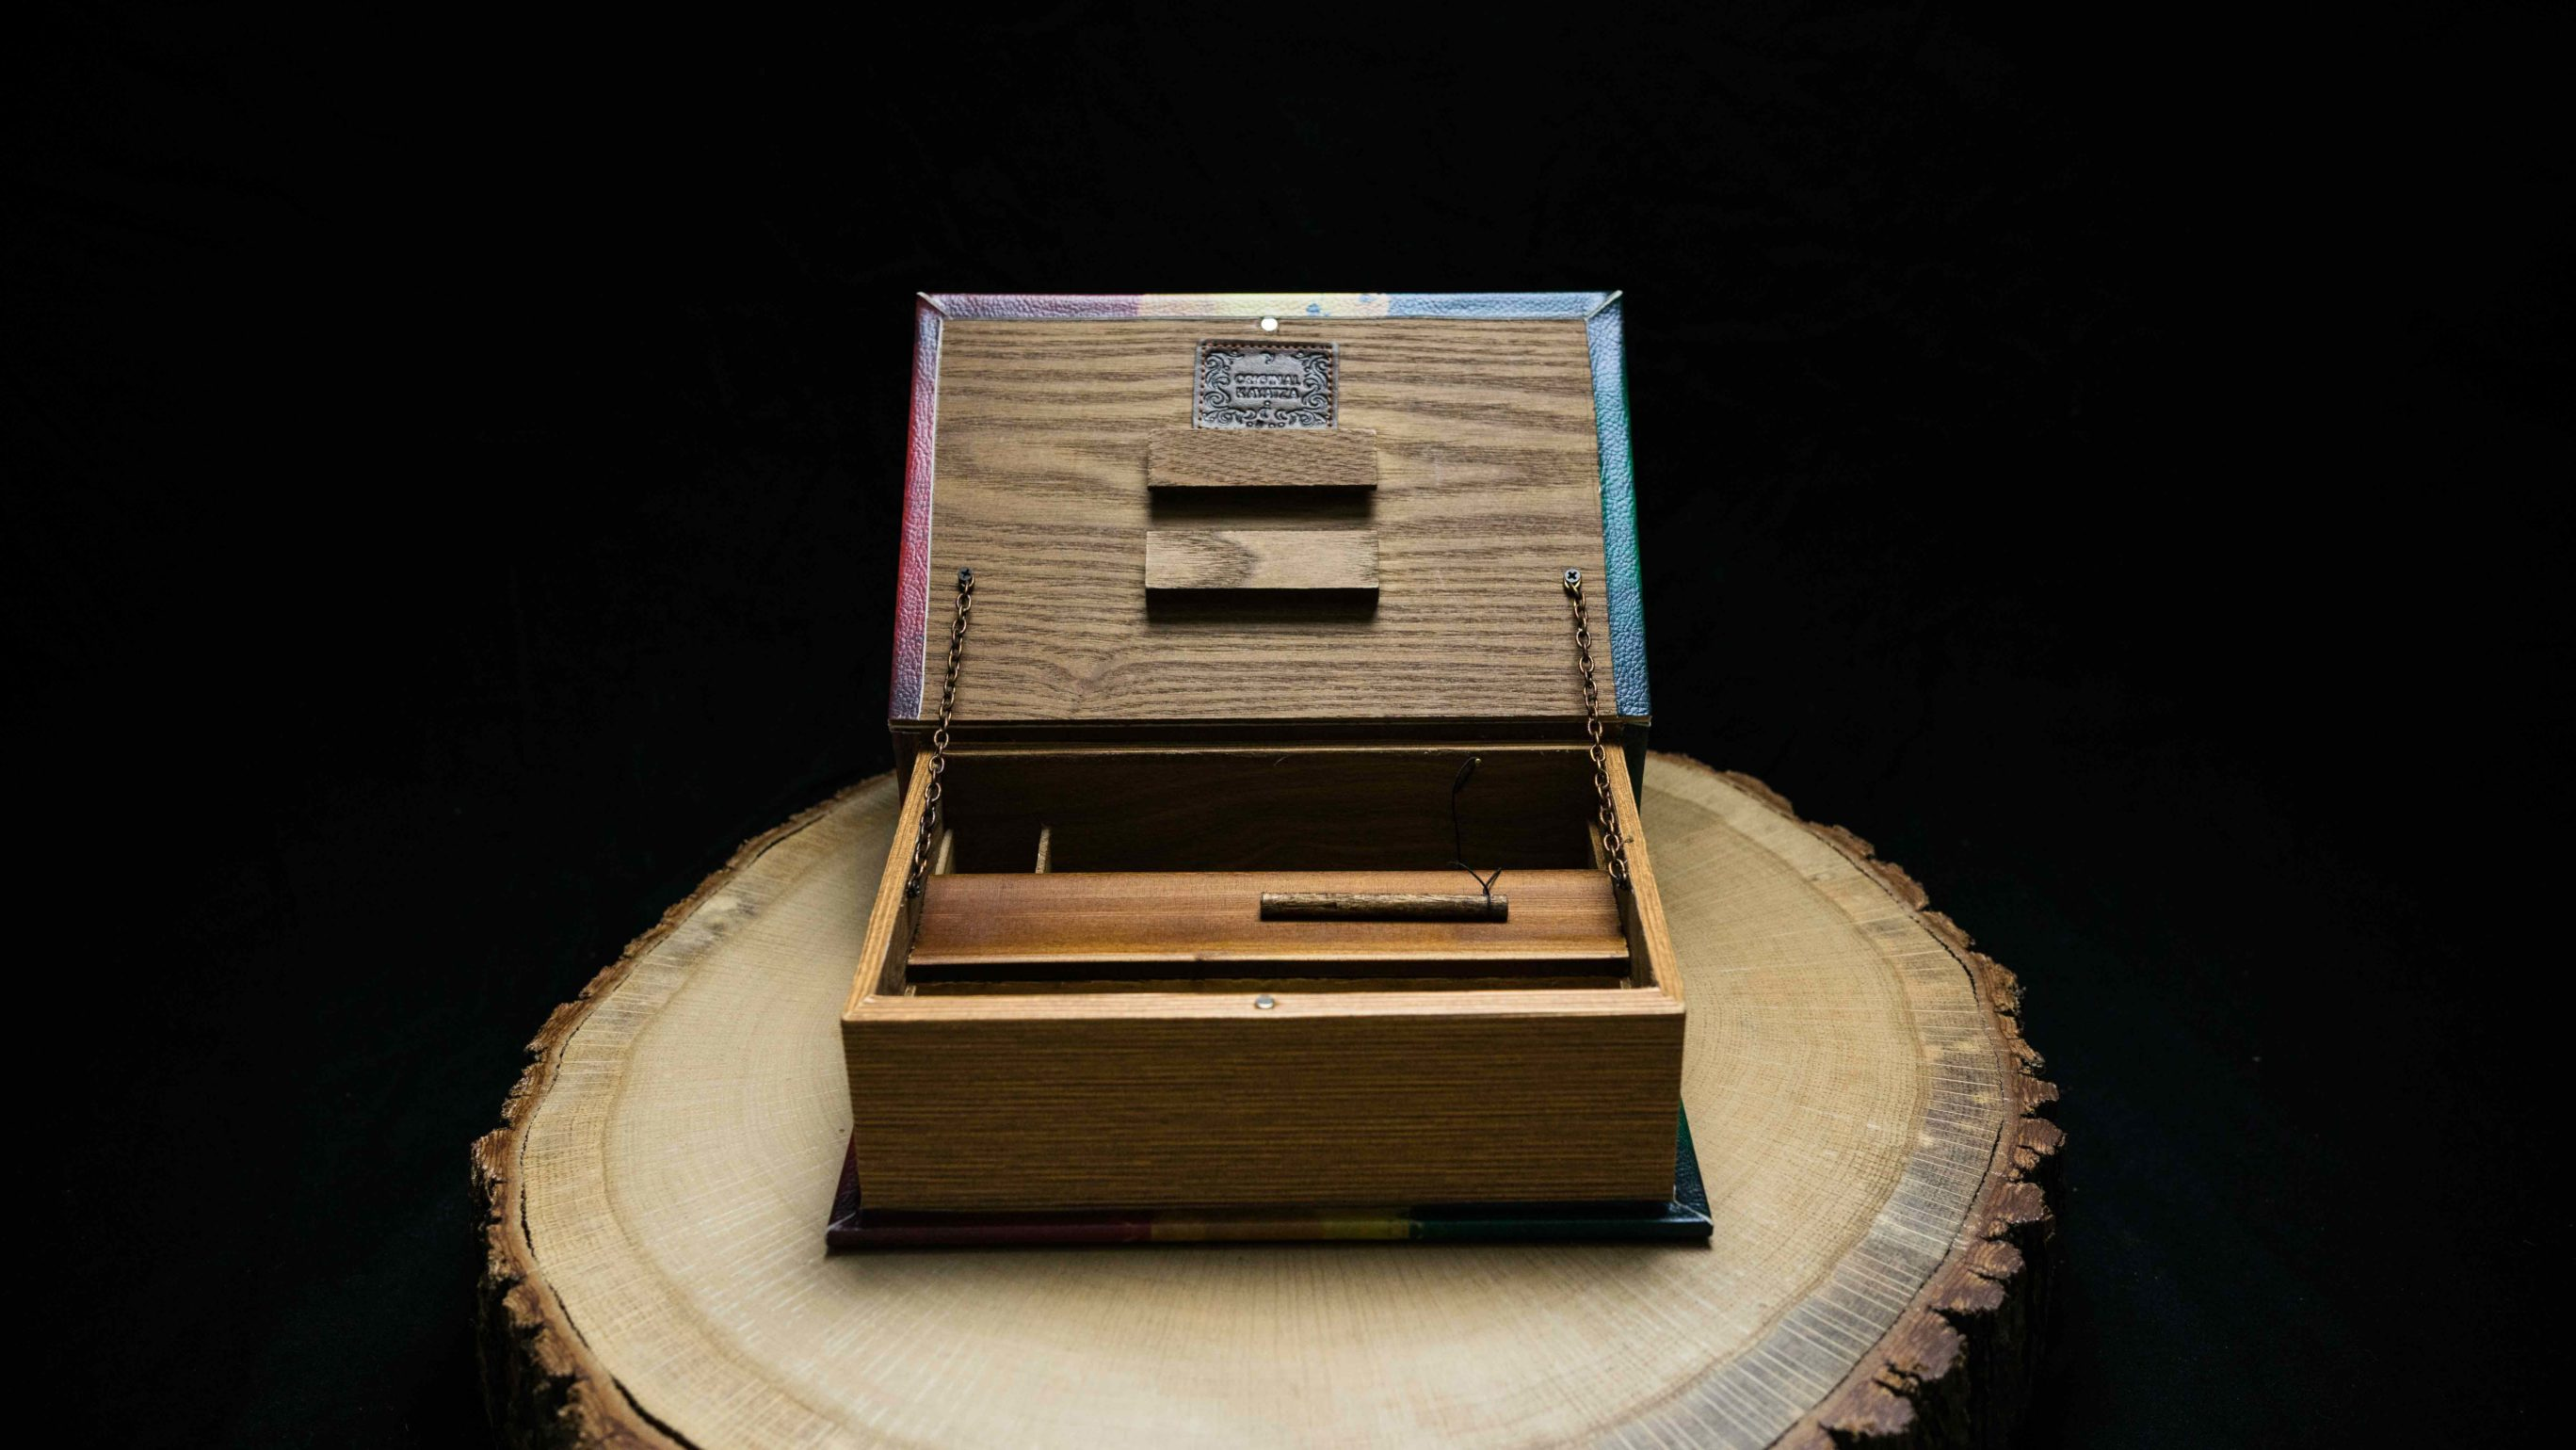 King of Zion, Book Box, Buch Box, Mini Box, ,Bong Buch, Bong Book, Original Kavatza, Kavatza, Unique Smoking Equipment, just roll with it